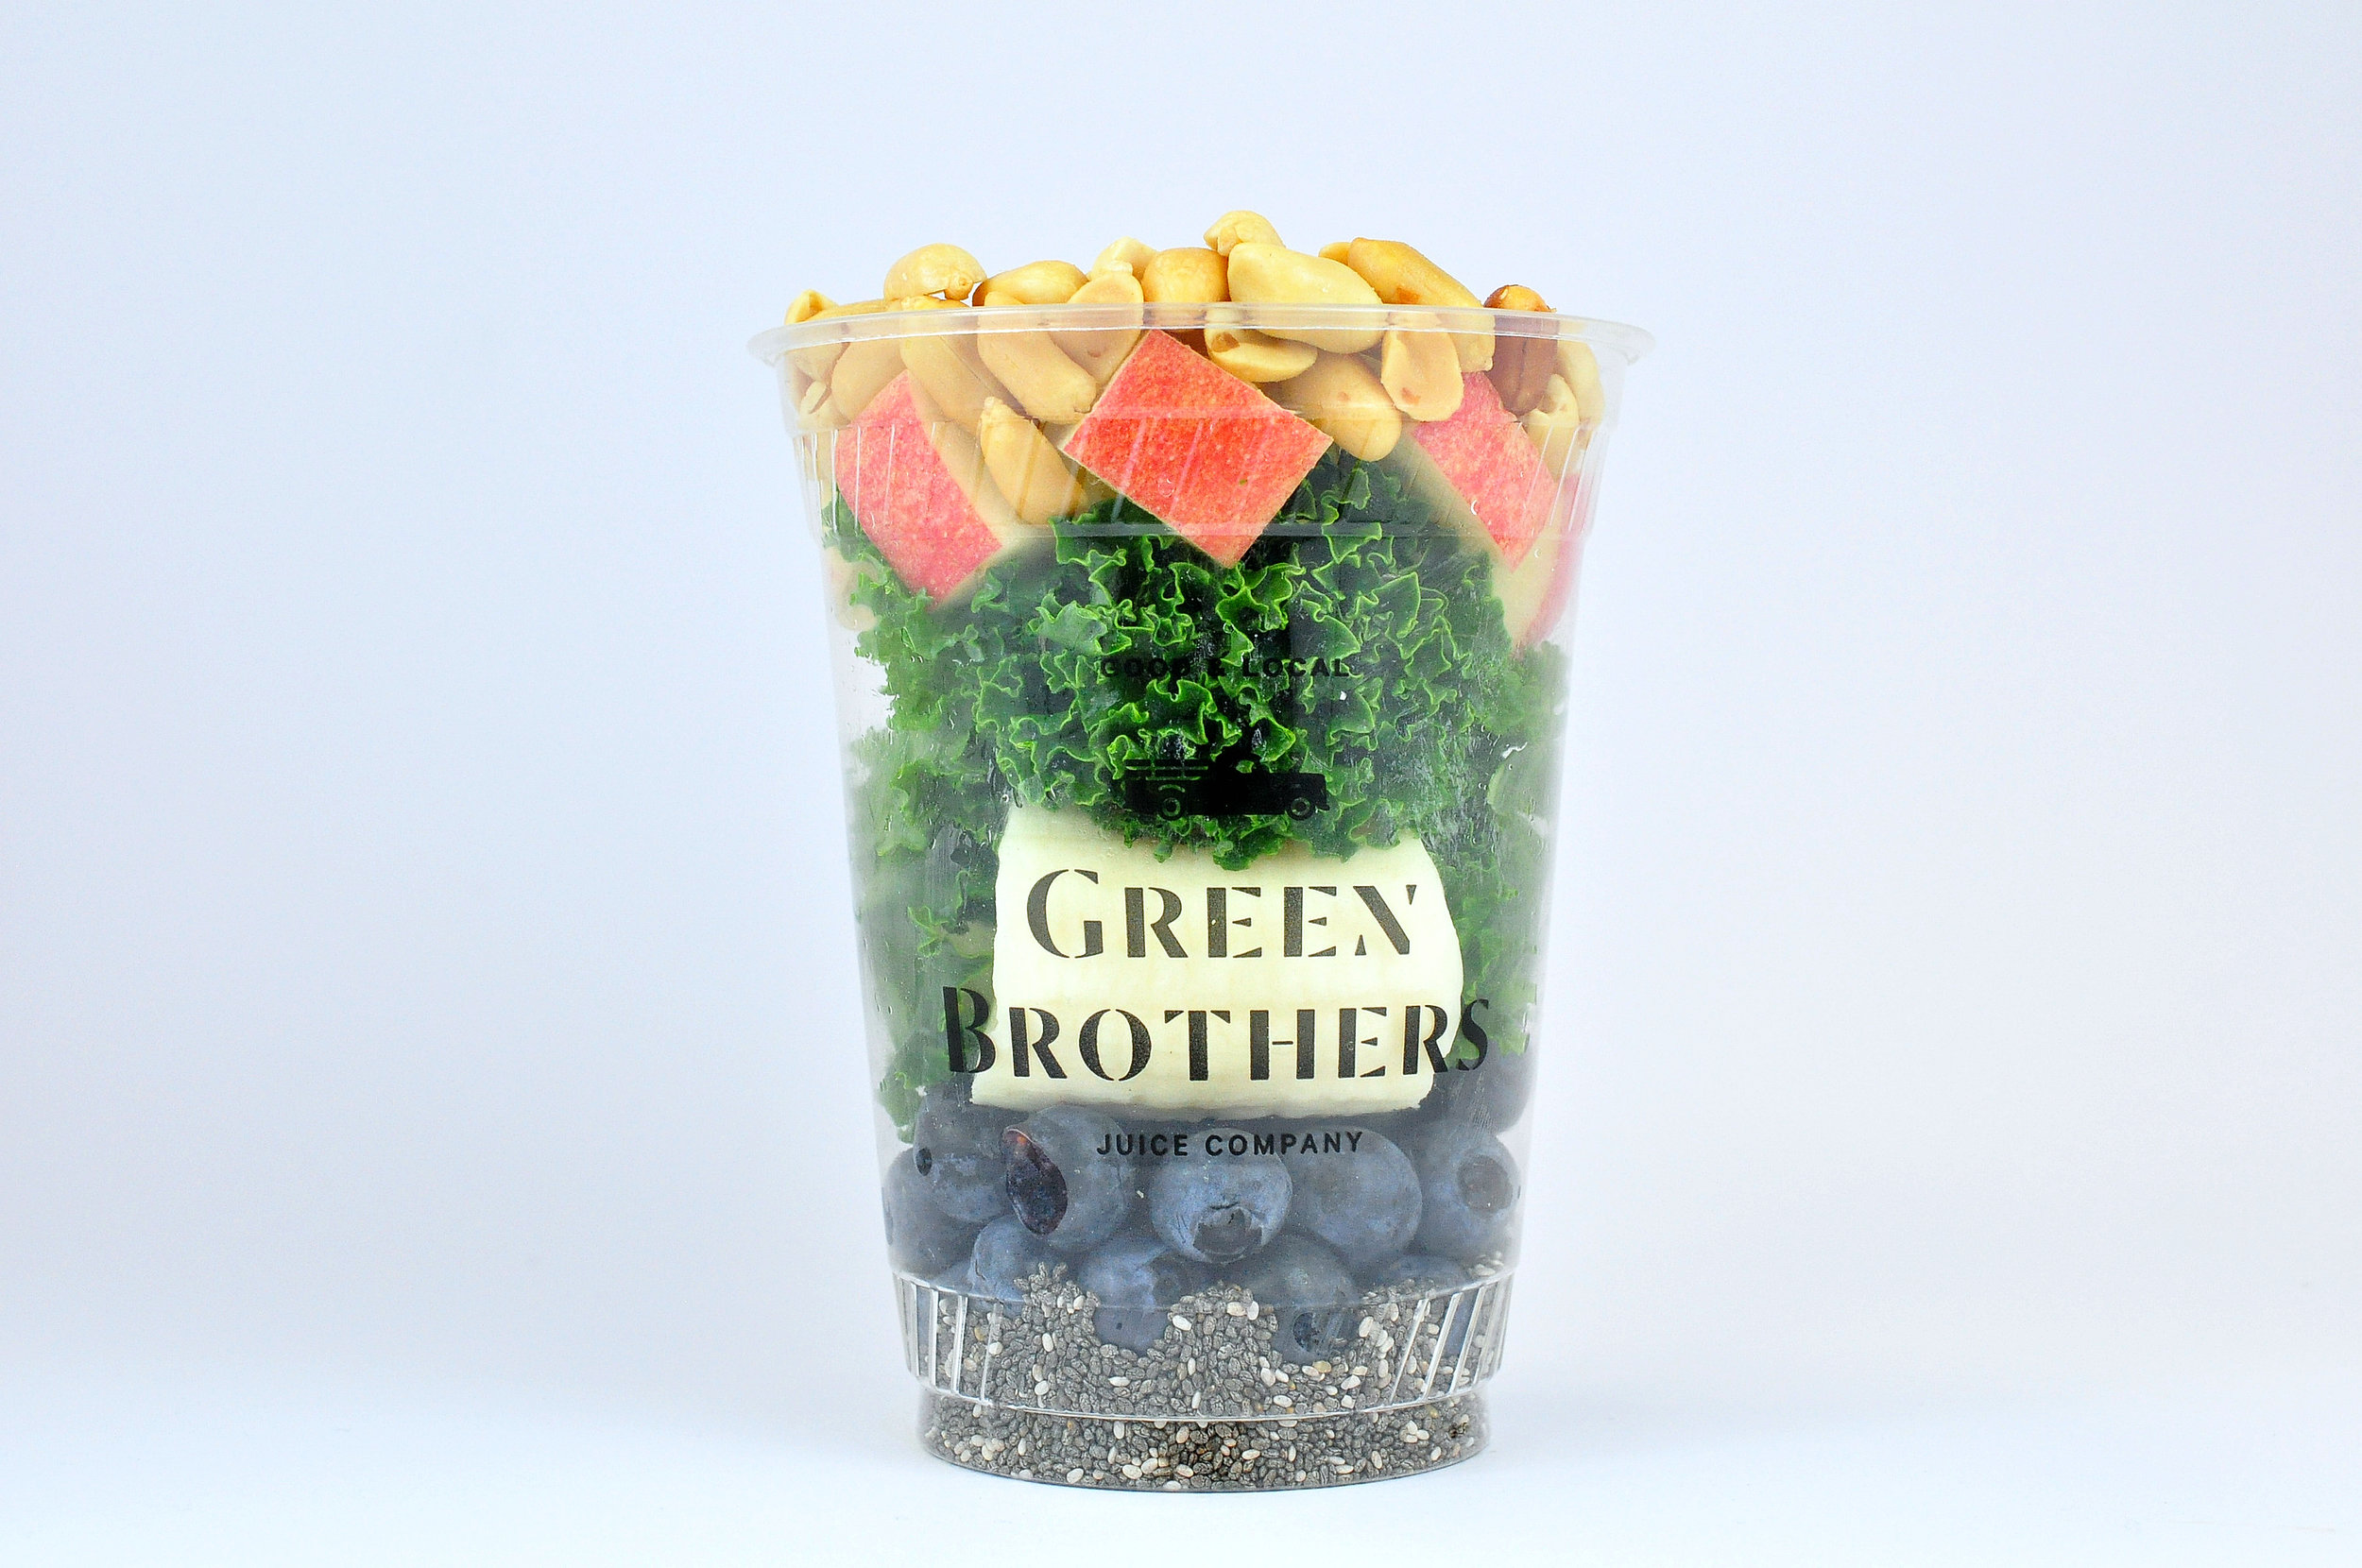 Antioxidants, protein, and fiber- Everything you need for a healthy meal on the go - blueberry, banana, peanut butter, kale, coconut oil,maca root, chia seeds, vegan protein, apple juice &almond milk